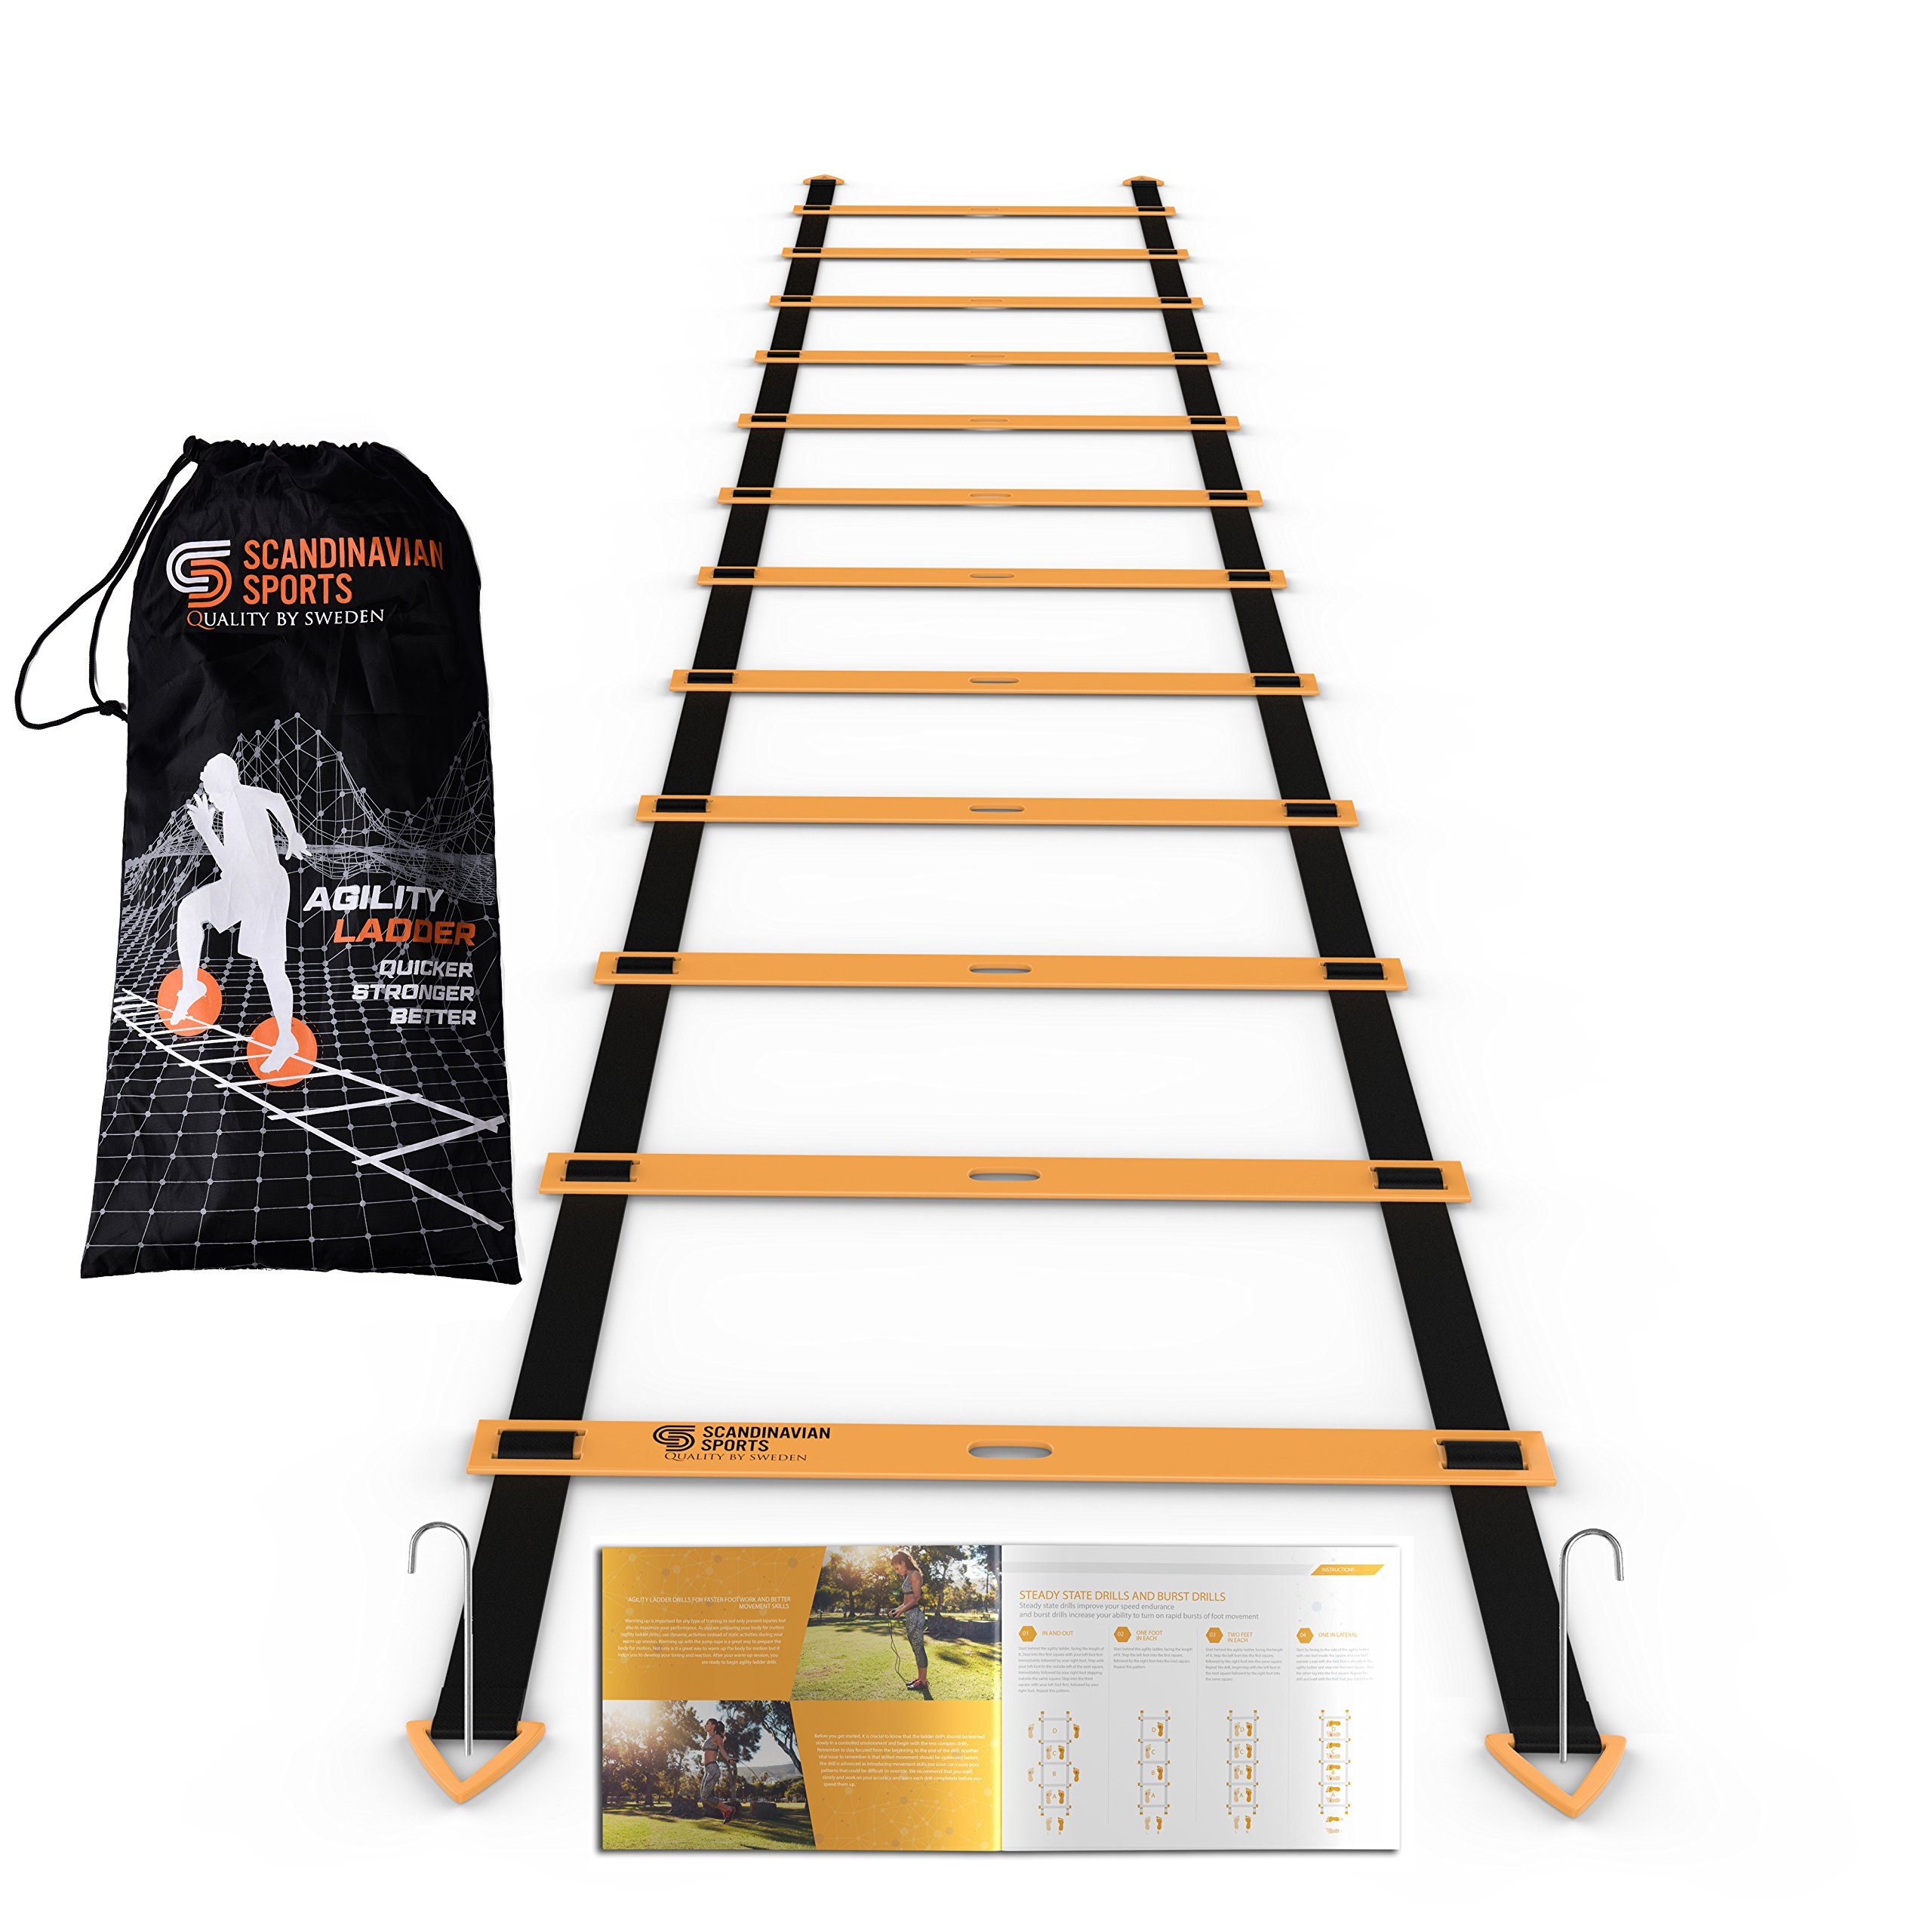 Scandinavian Sports Agility Ladder - 12 Adjustable Rungs 19 Feet - Agility & Speed Training Kit - Quickness Training Equipment For Faster Footwork And Better Movement Skills by